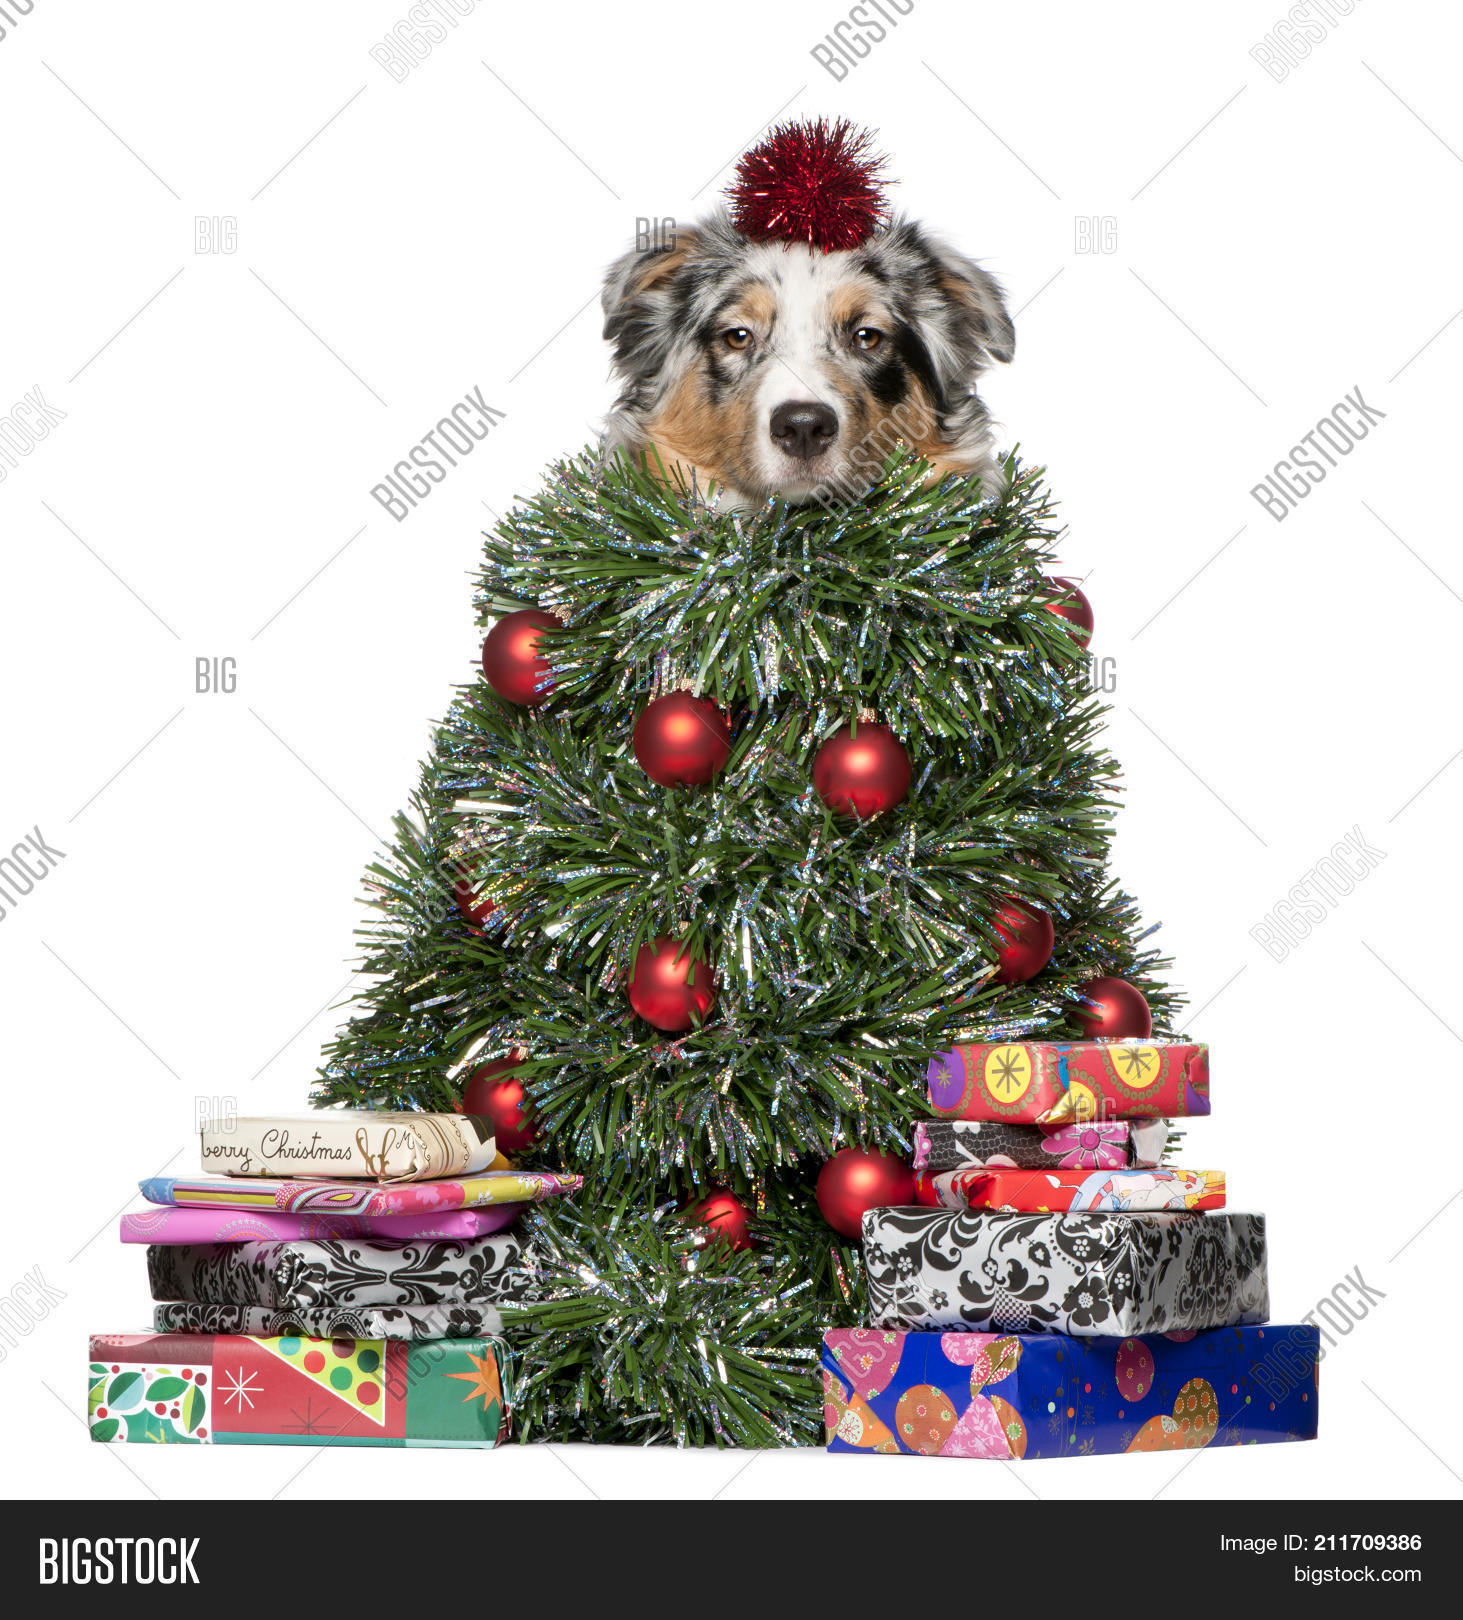 australian shepherd dog dressed as christmas tree 7 months old in front of white